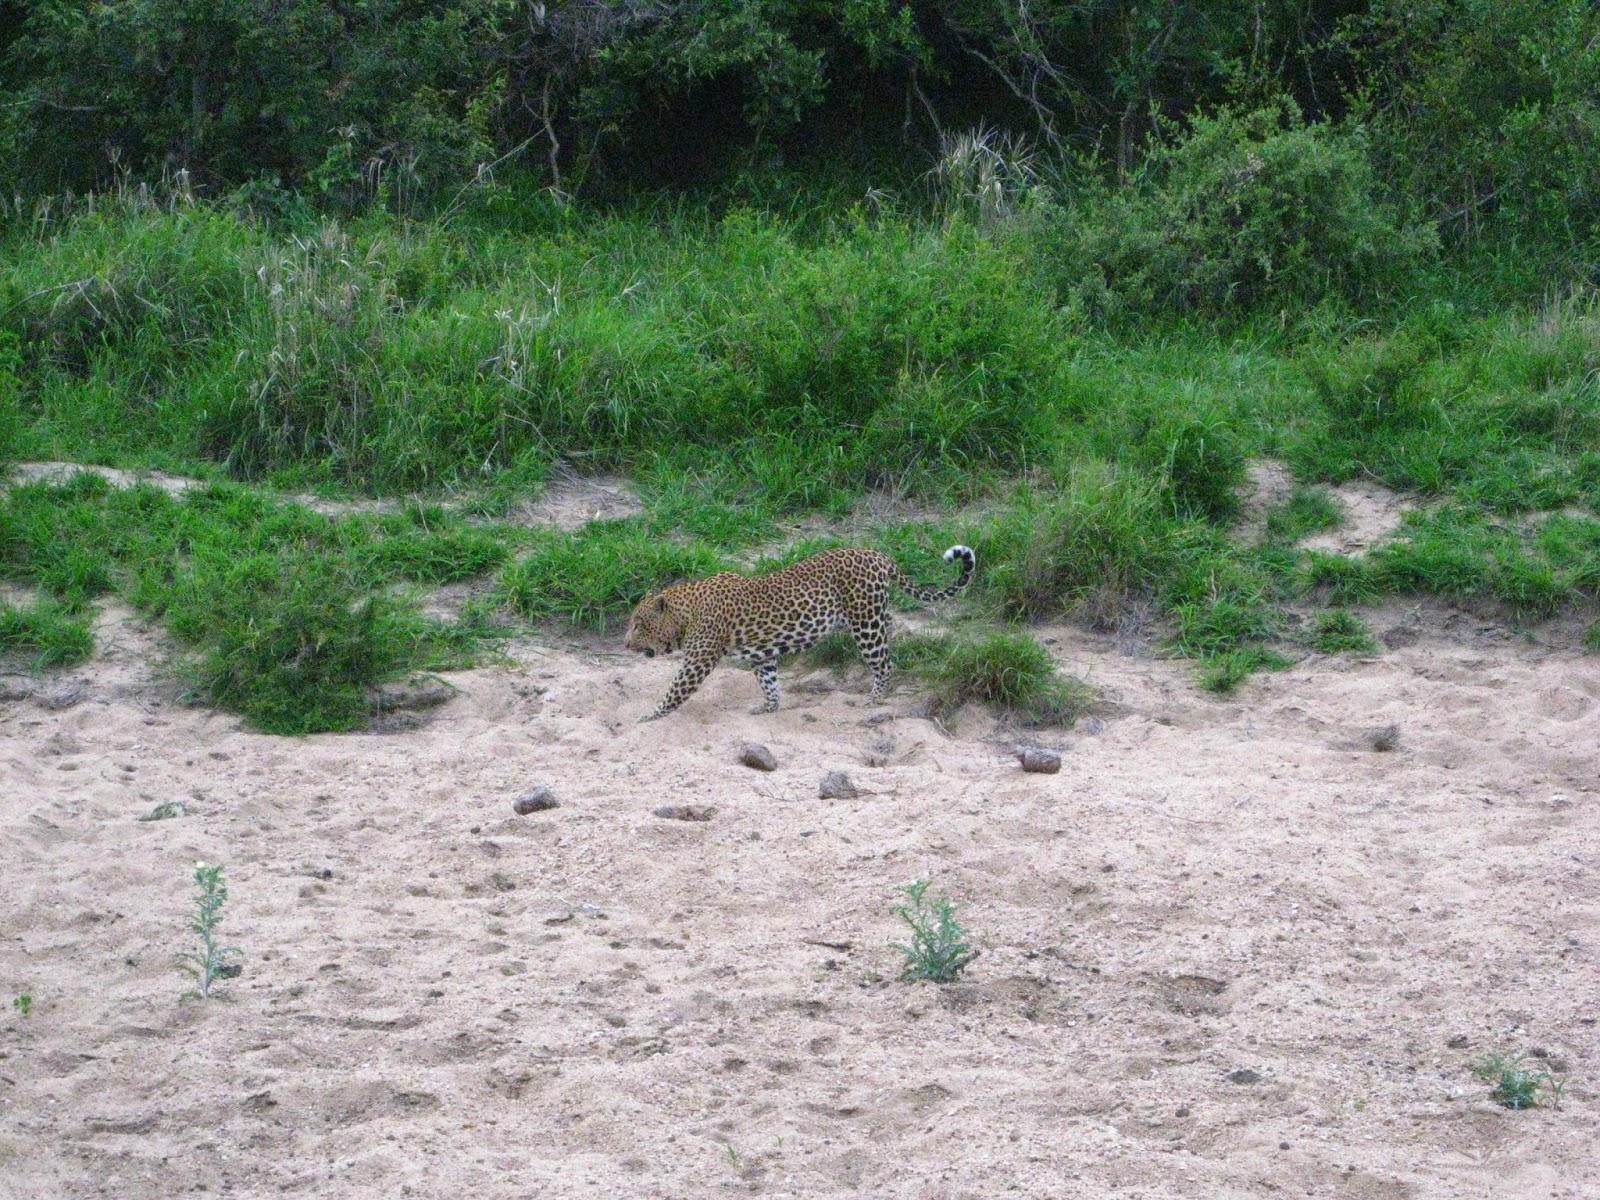 Sabi Sands - We tracked a male leopard along a dry creek bed